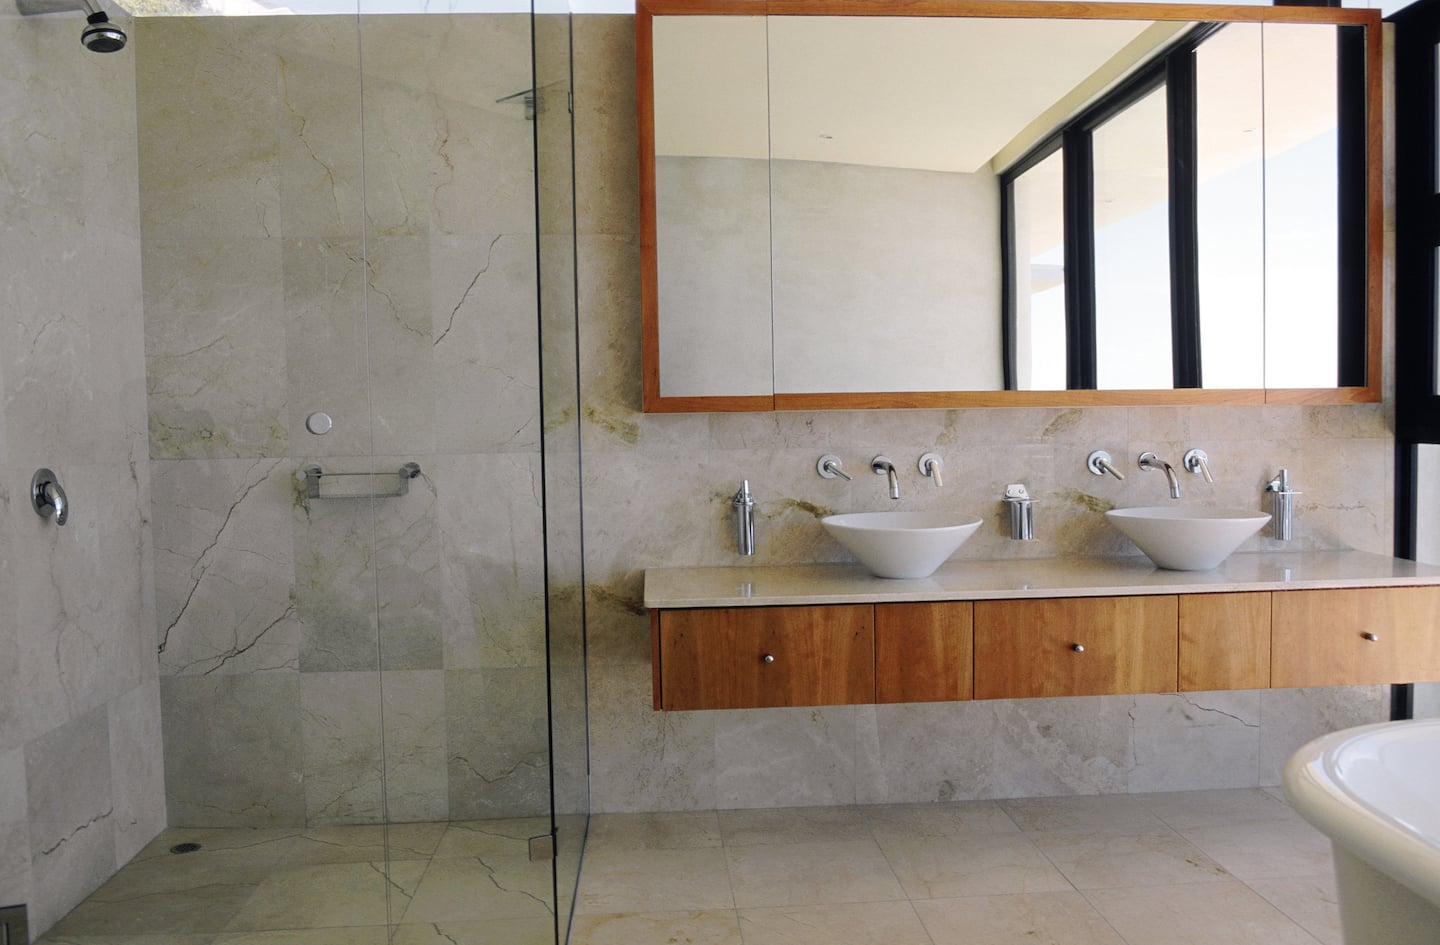 A Modern Looking Bathroom Scene With Two Bowl Sinks On A Wood Faced Shelf  Counter